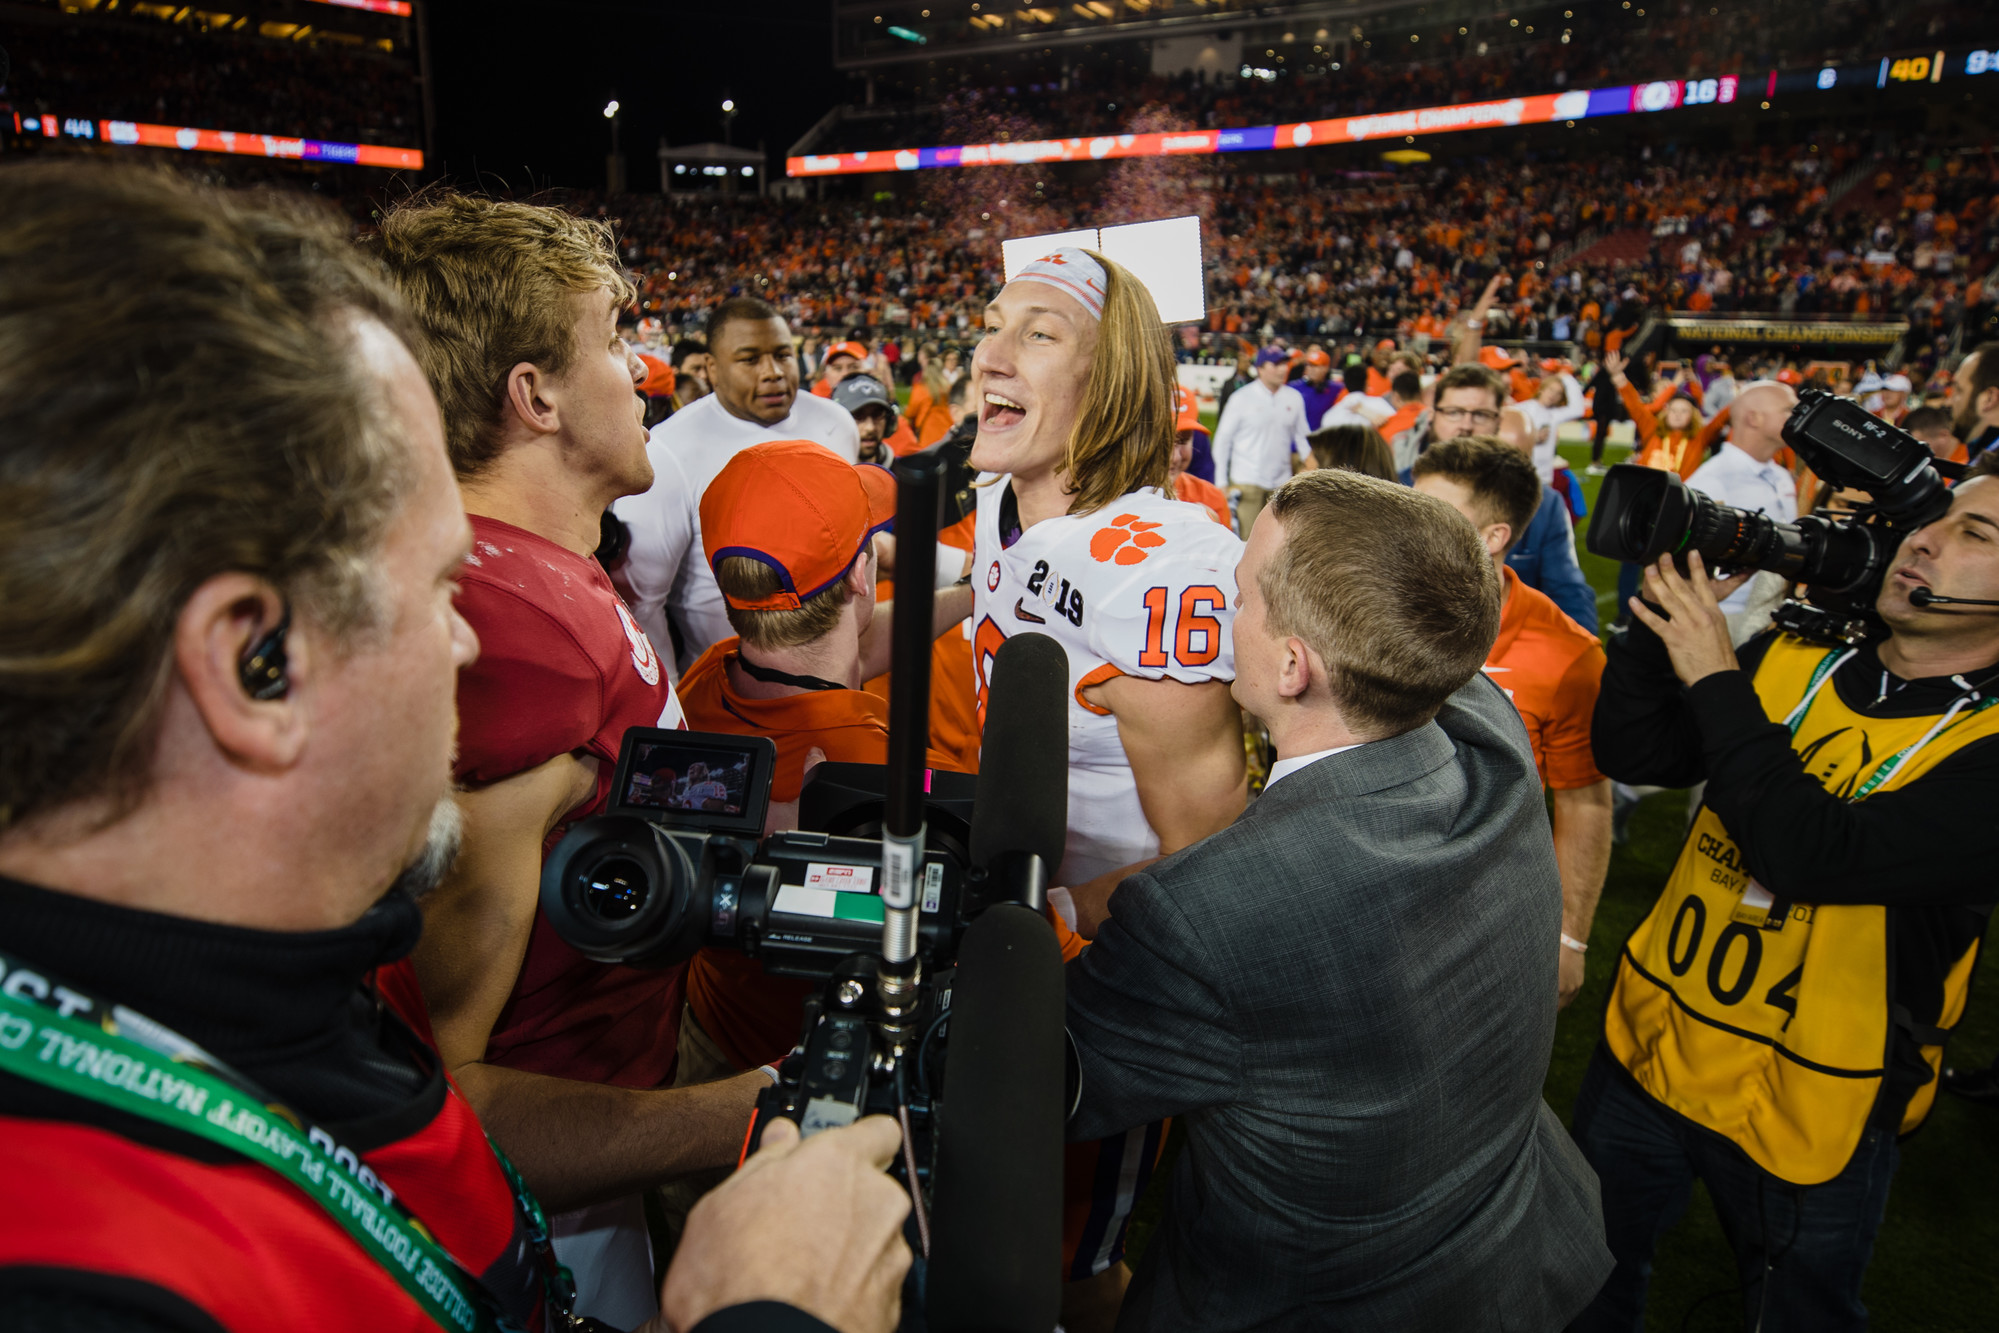 Clemson quarterback Trevor Lawrence, the game's offensive MVP, greets an Alabama player at Levi's Stadium in Santa Clara, California, on Monday, Jan. 7 after routing the Crimson Tide 44-16 to win the 2019 CFP National Championship.